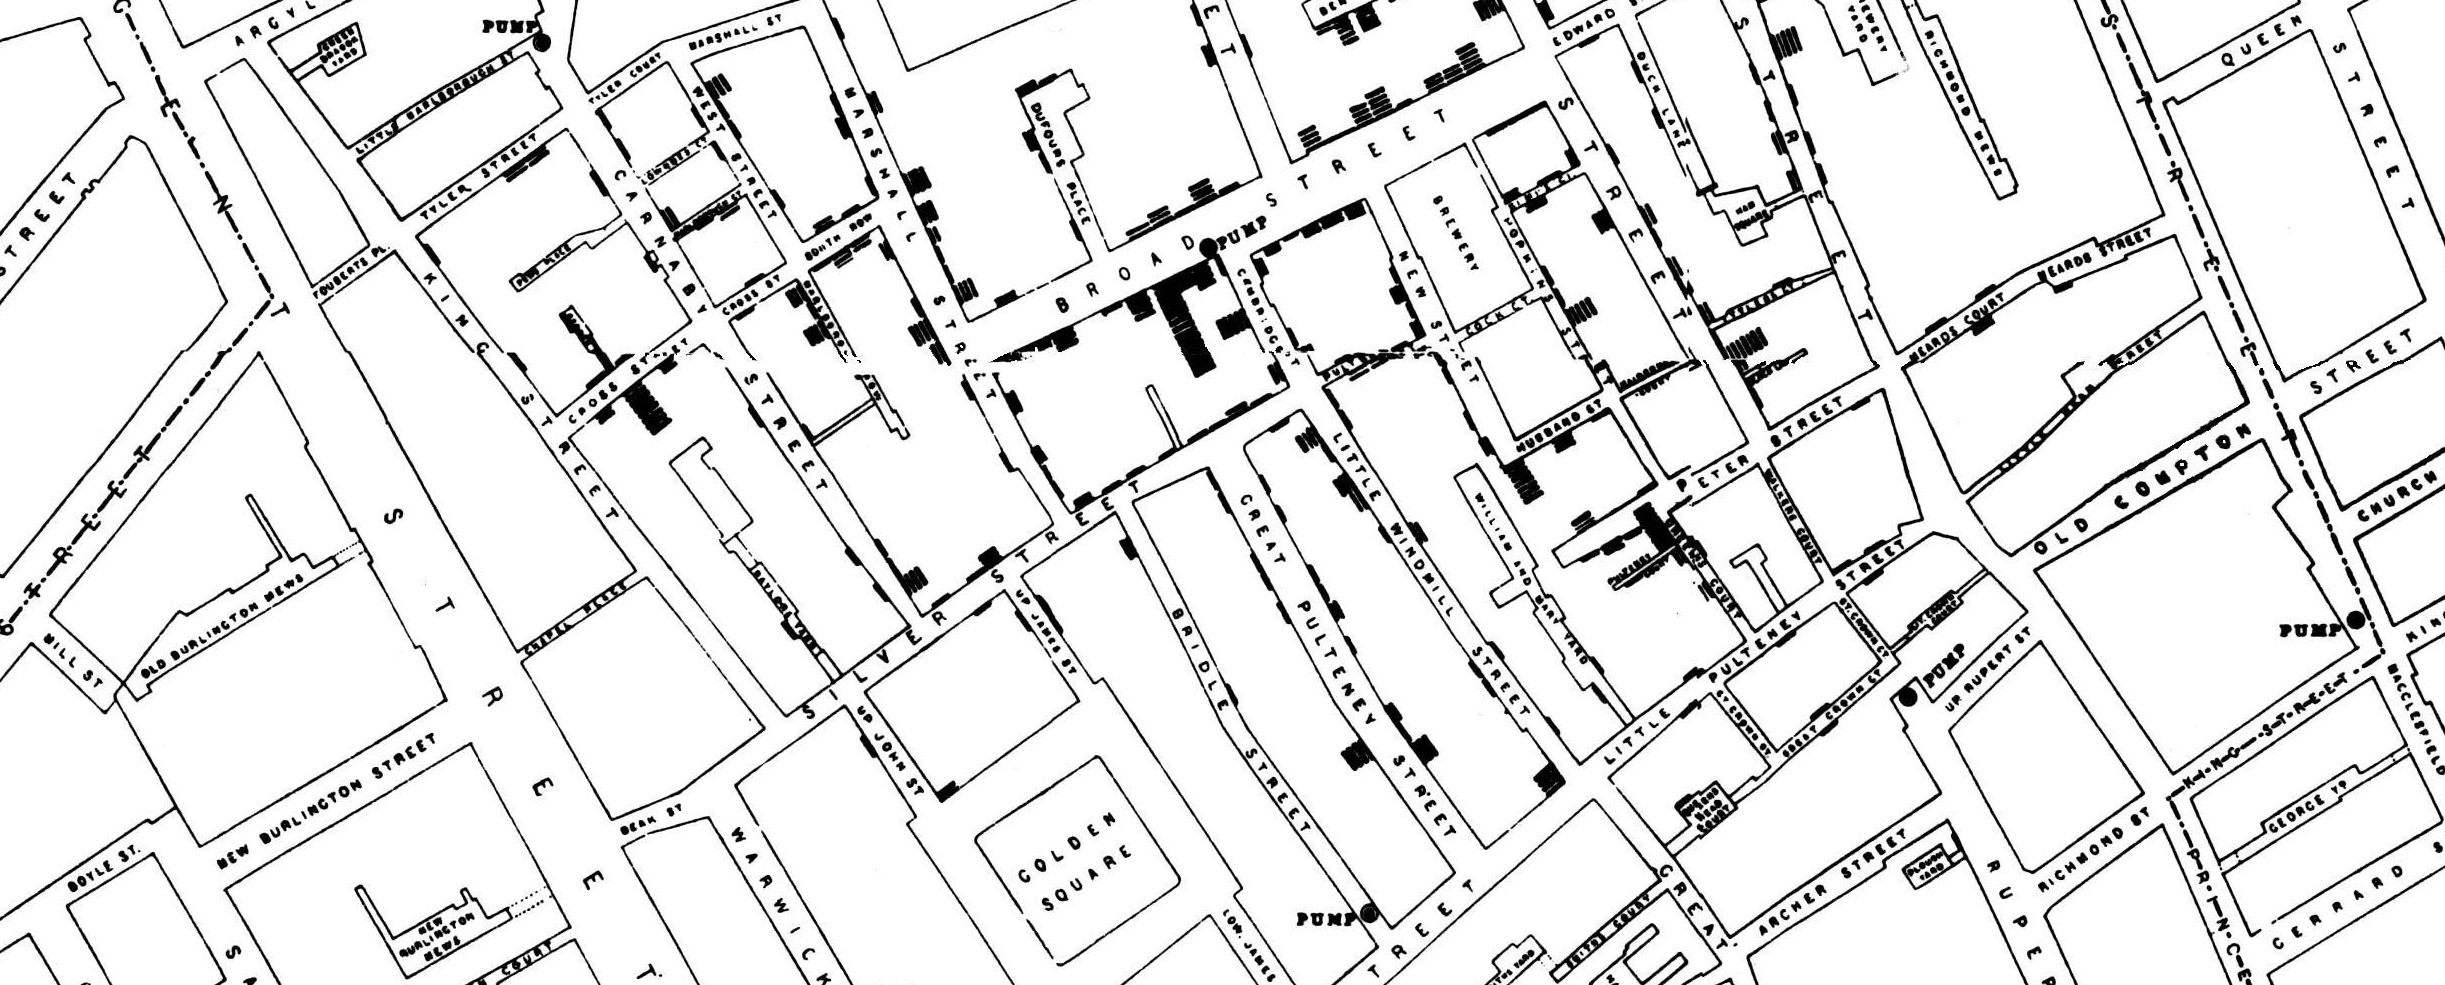 Map showing cases of cholera in the London epidemics of 1854, clustered around the locations of water pumps -- drawn by Dr. John Snow